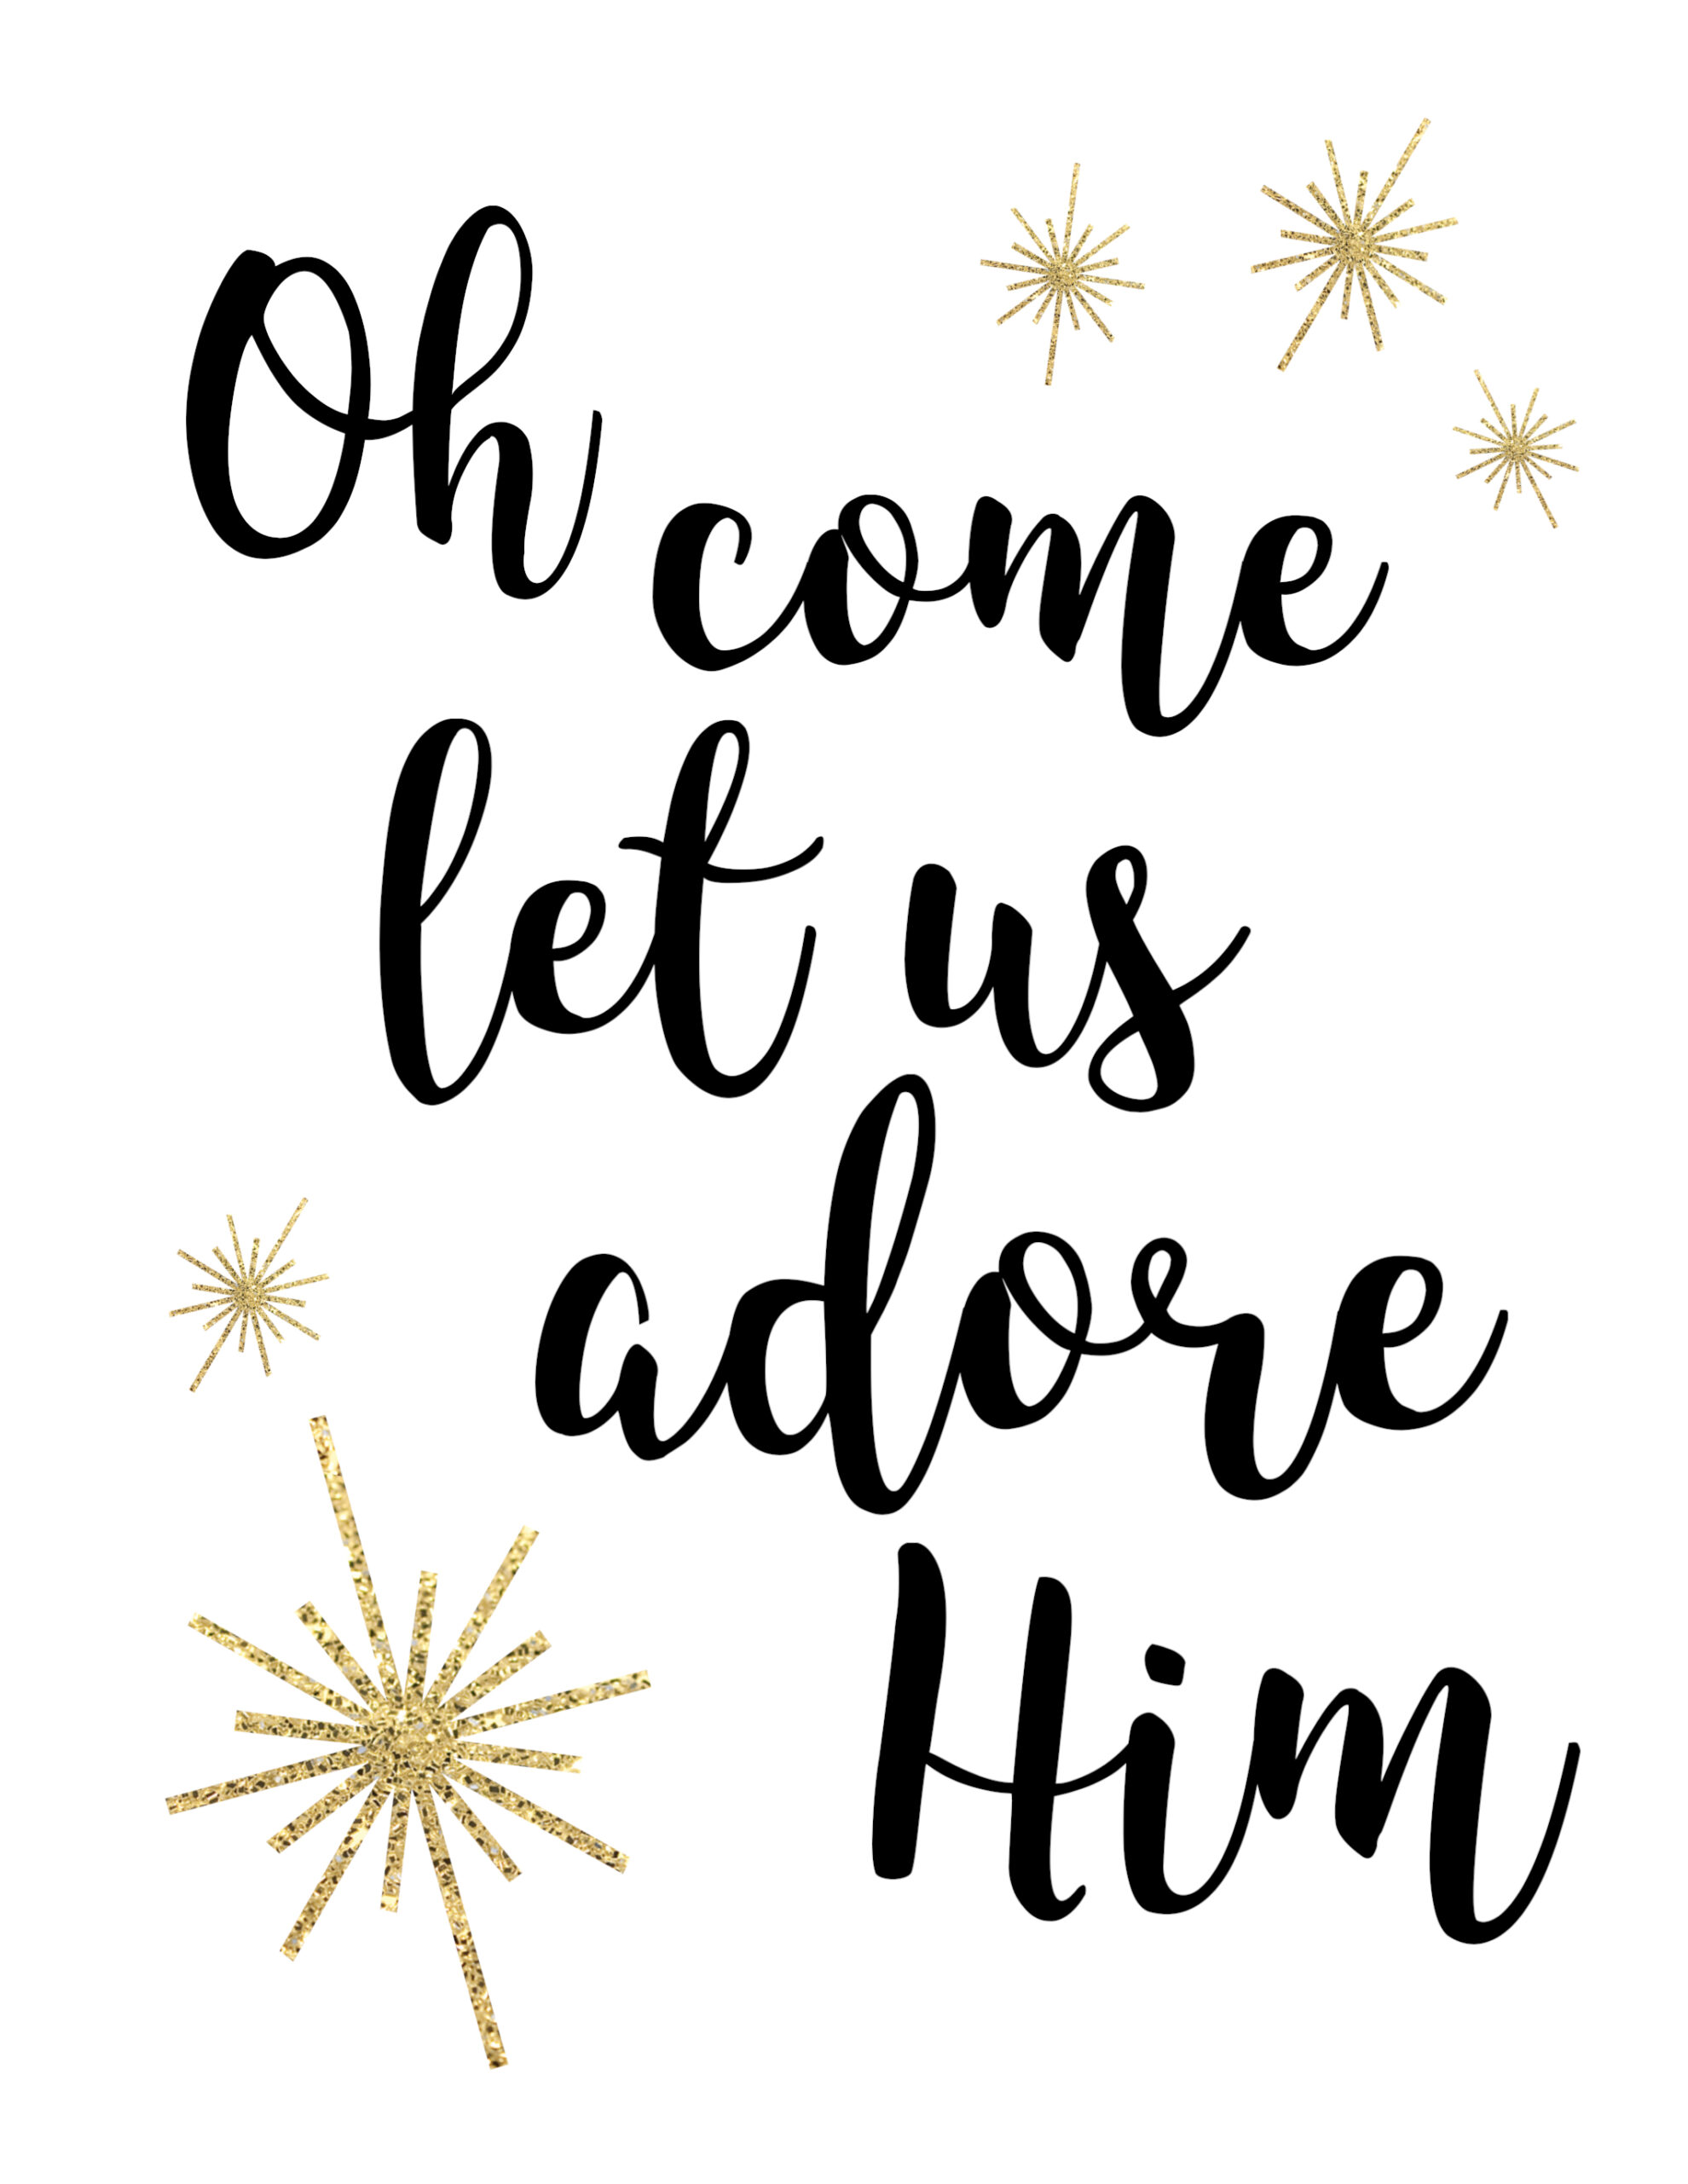 Oh come let us adore him clipart graphic free download Oh Come Let Us Adore Him Printable Christmas Decor - Paper Trail Design graphic free download